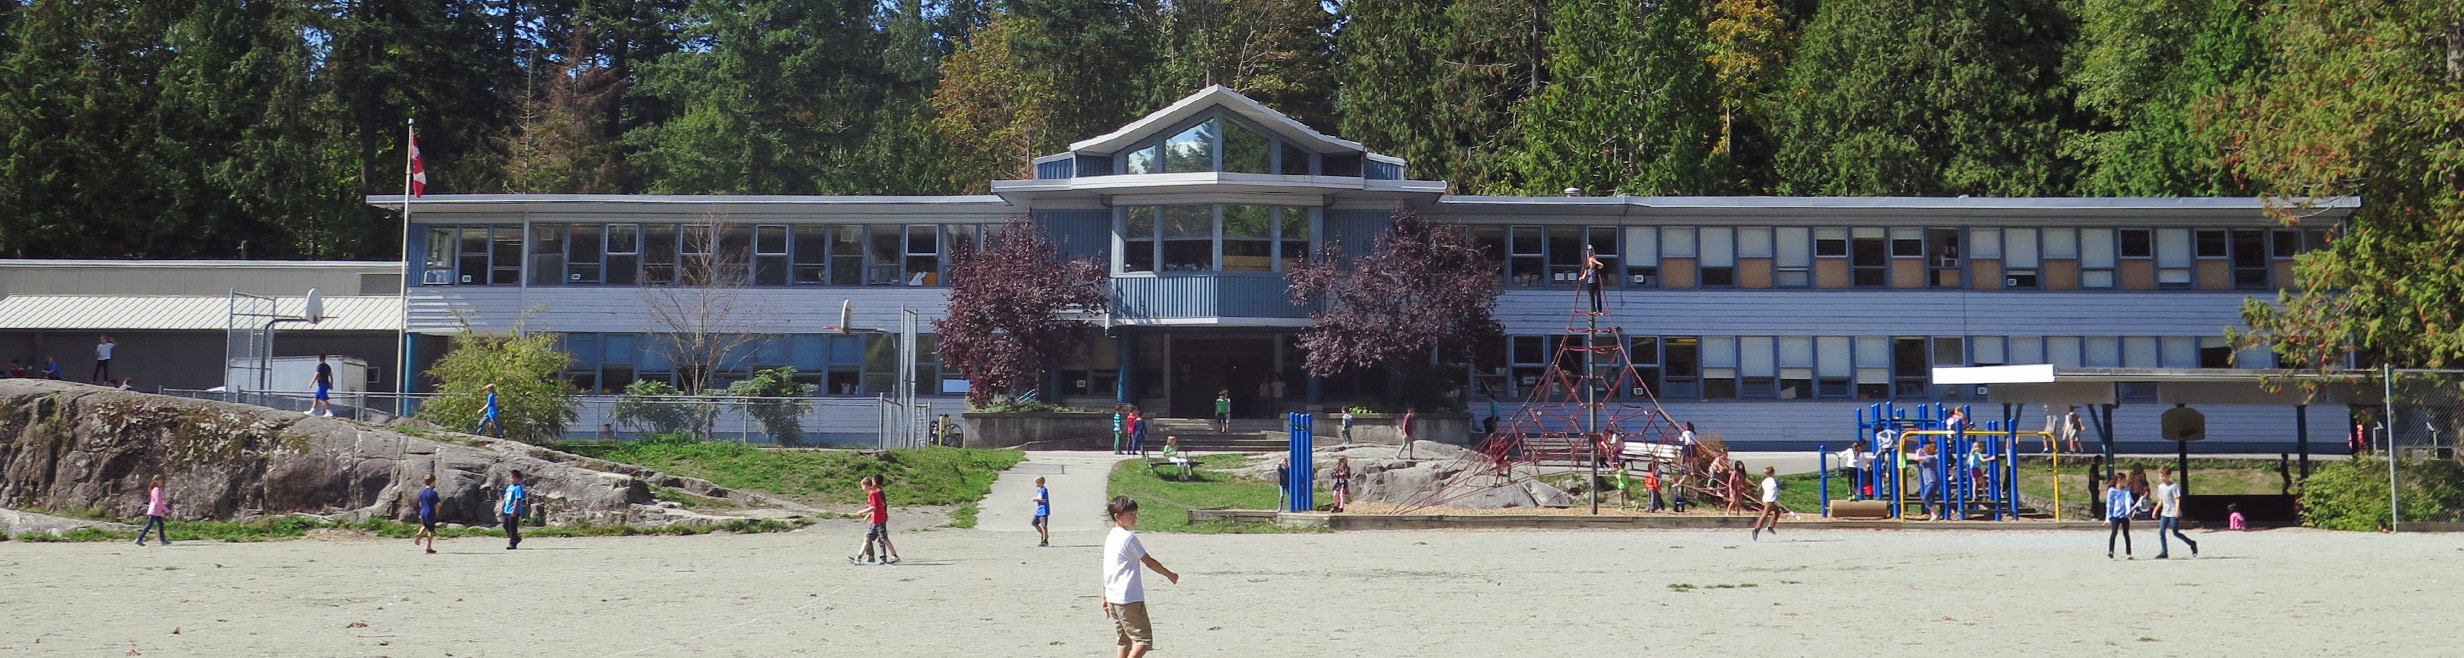 caulfeild-west-vancouver-school-10